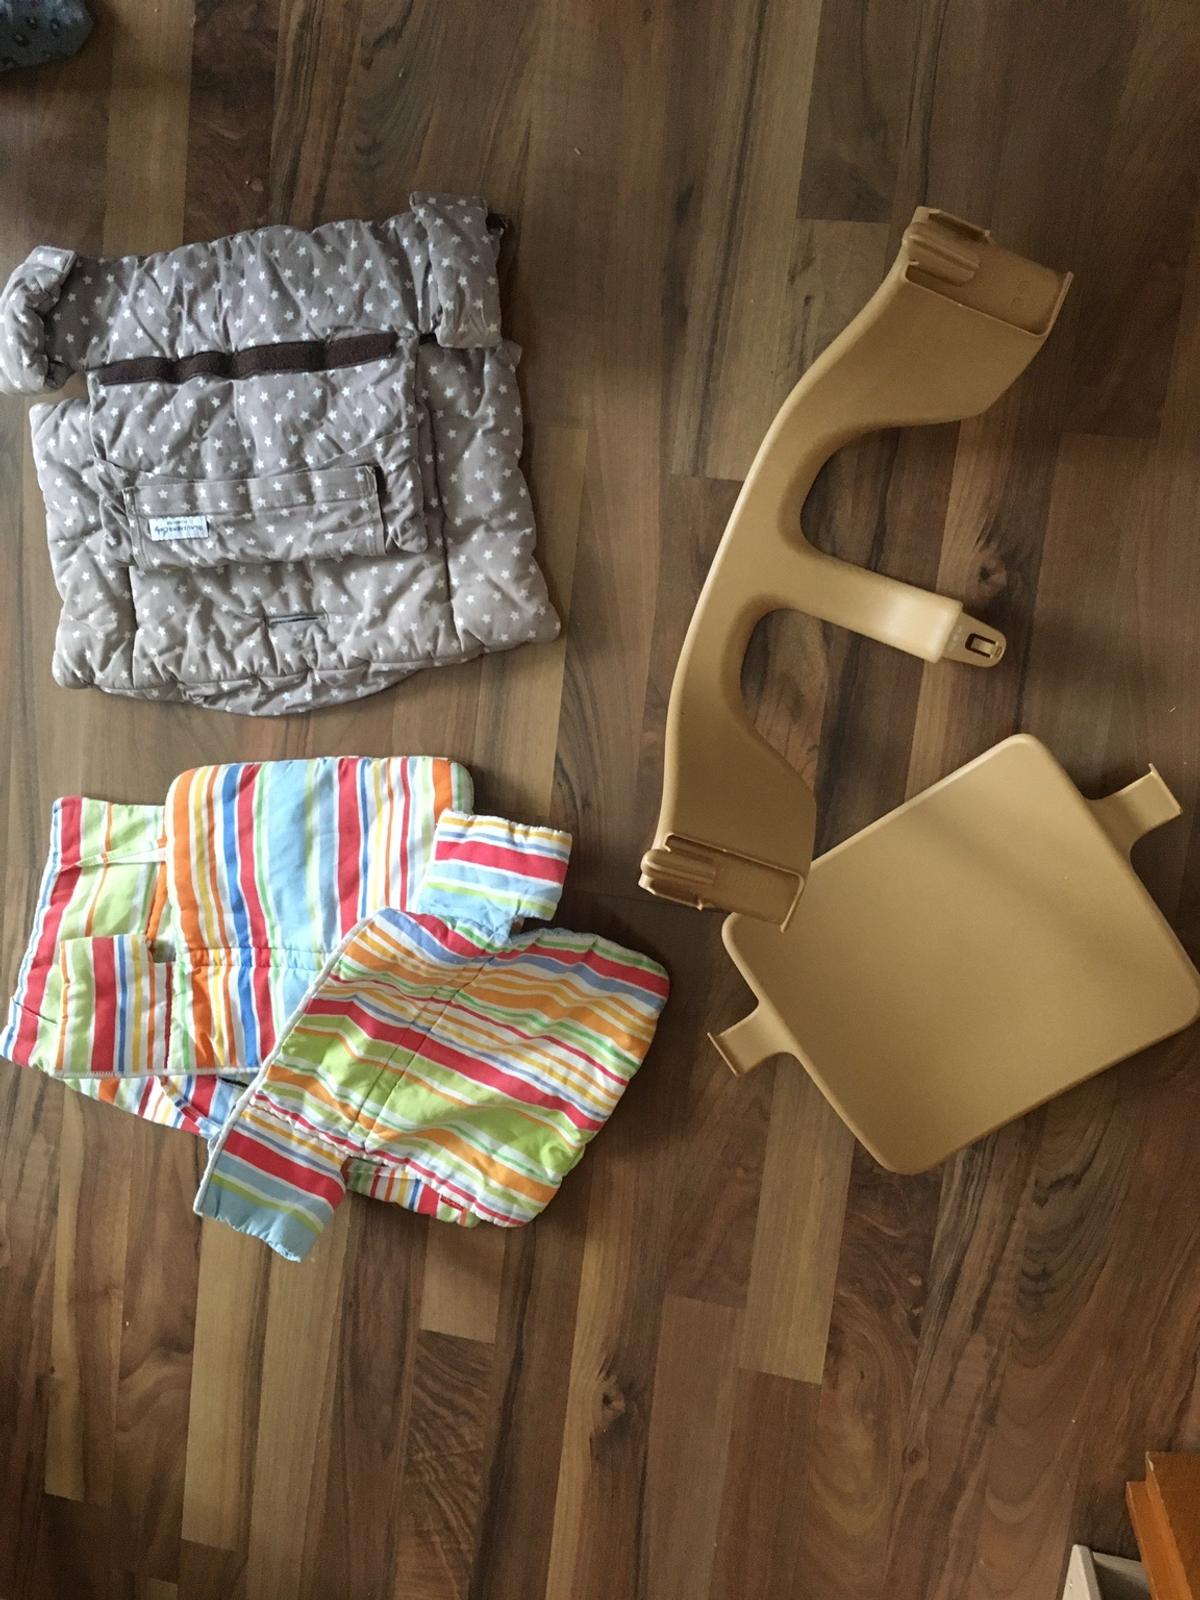 Tripp Trapp Baby Set In 6020 Innsbruck For 50 00 For Sale Shpock